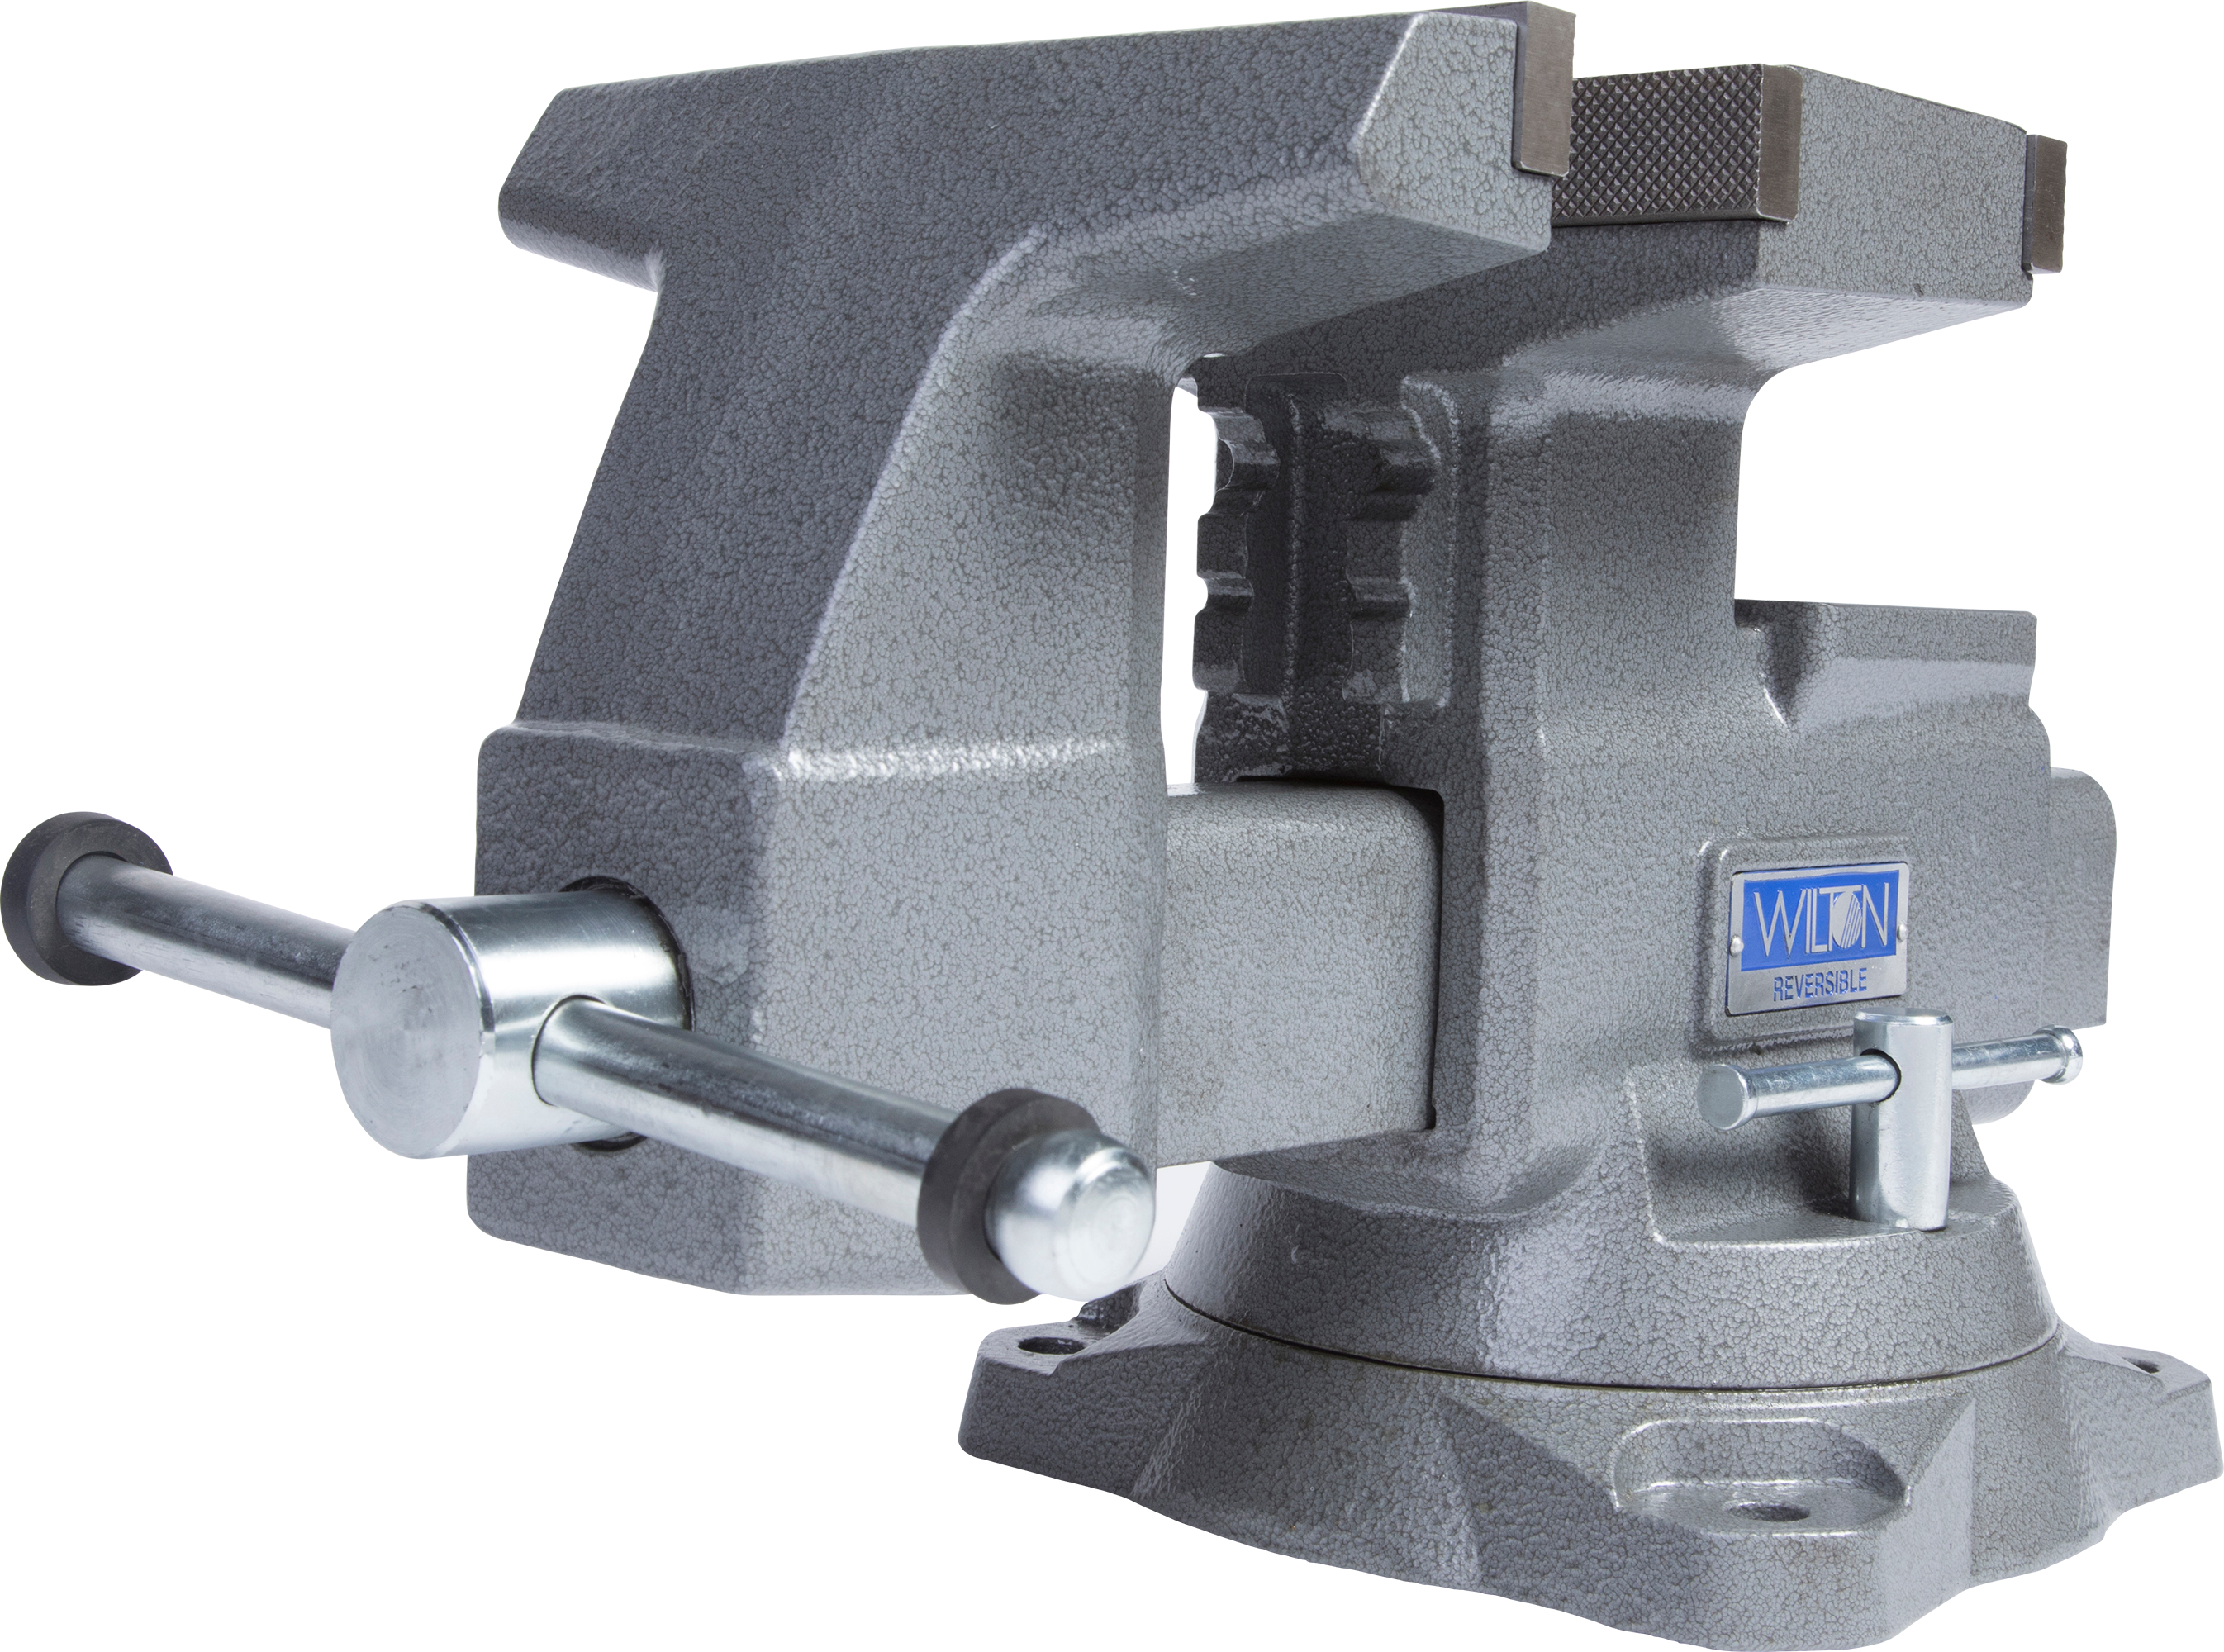 "Manual: Reversible Bench Vise 8"" Jaw Width with 360° Swivel Base"